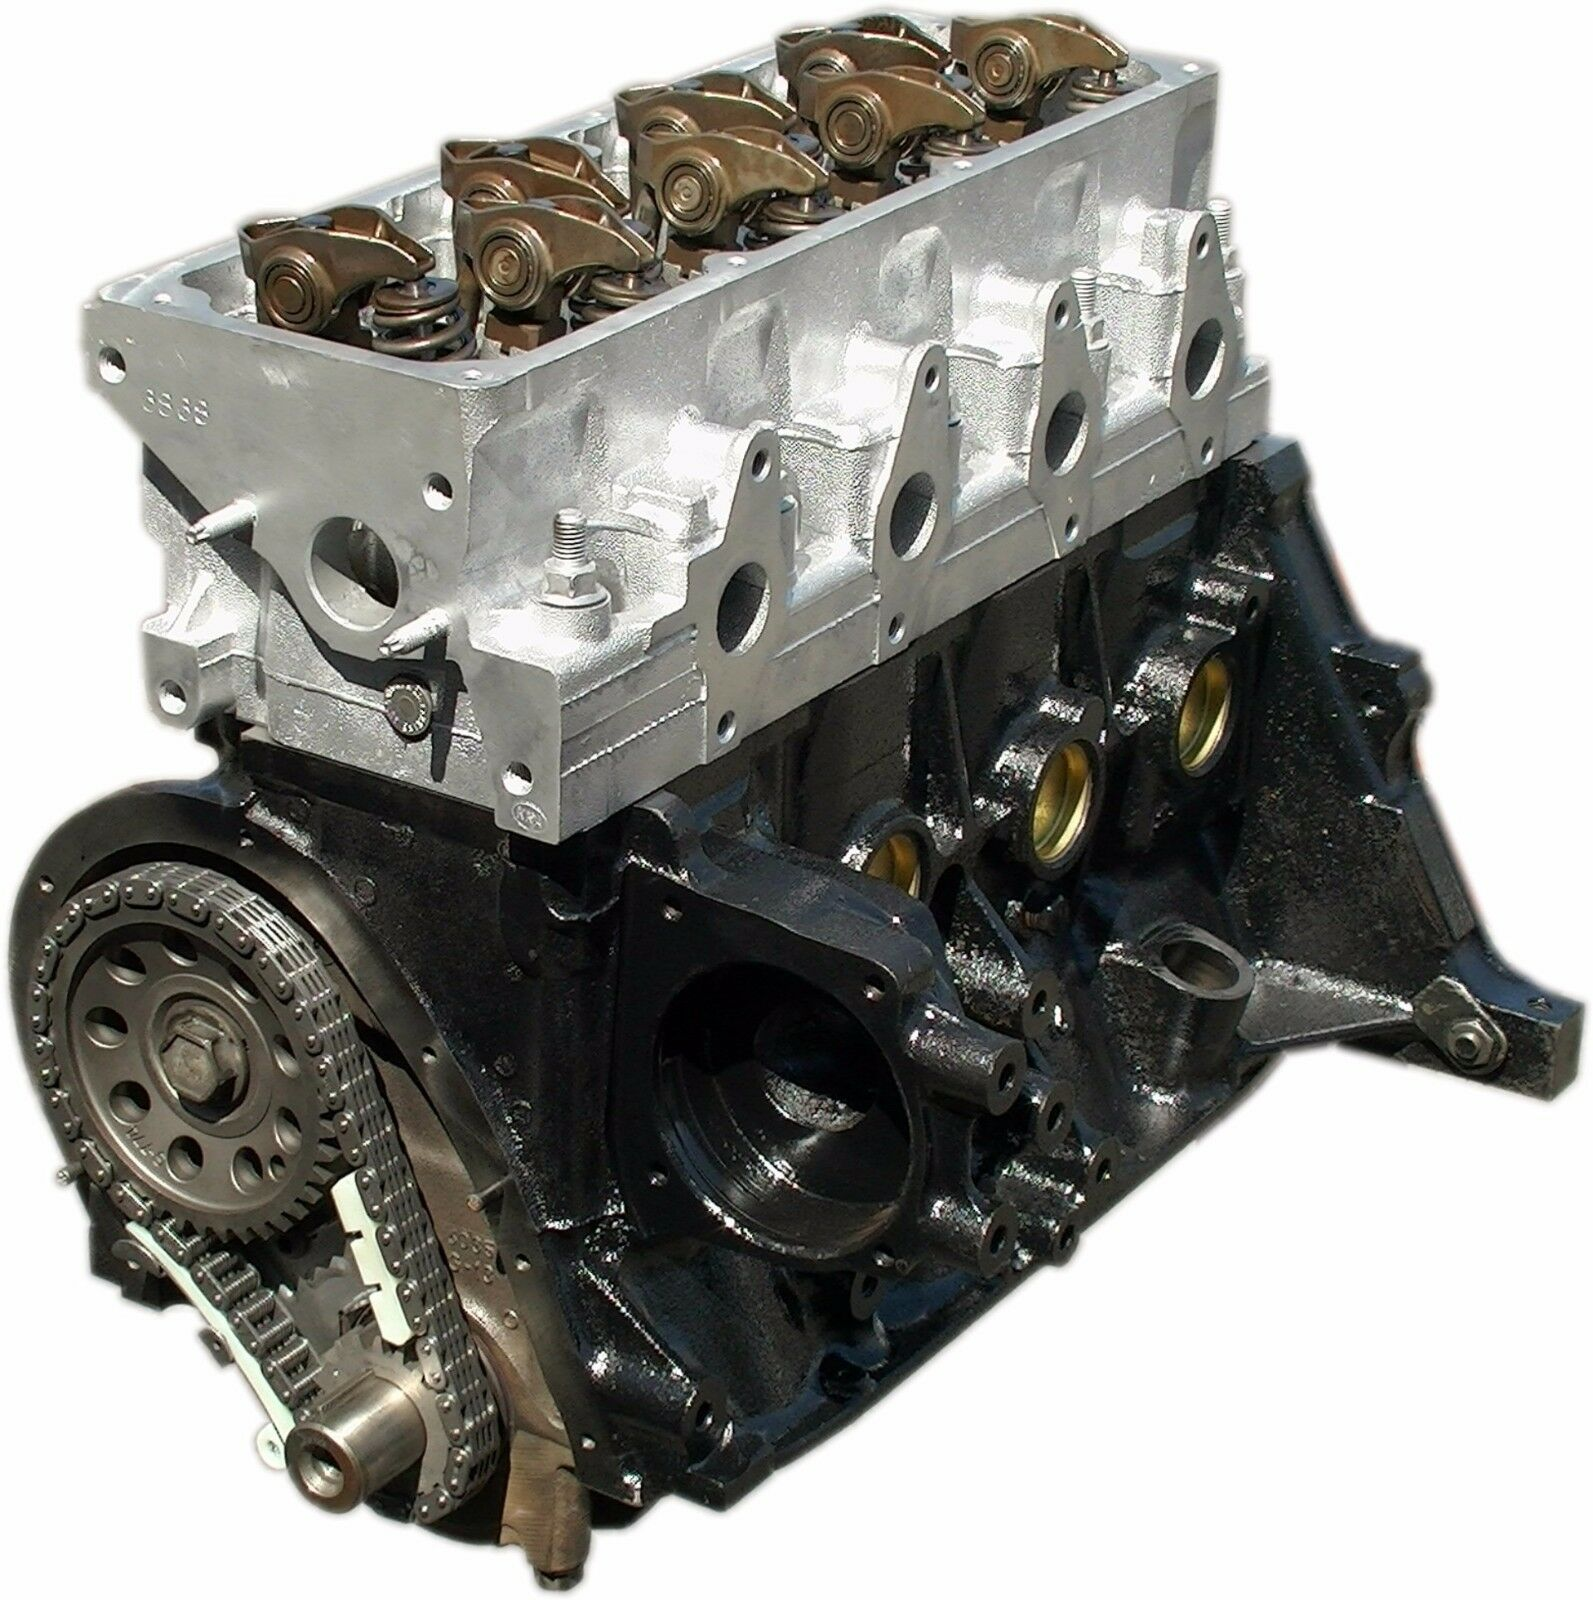 Remanufactured 90-2003 GM 2.2 Chevy Long Block Engine | eBay